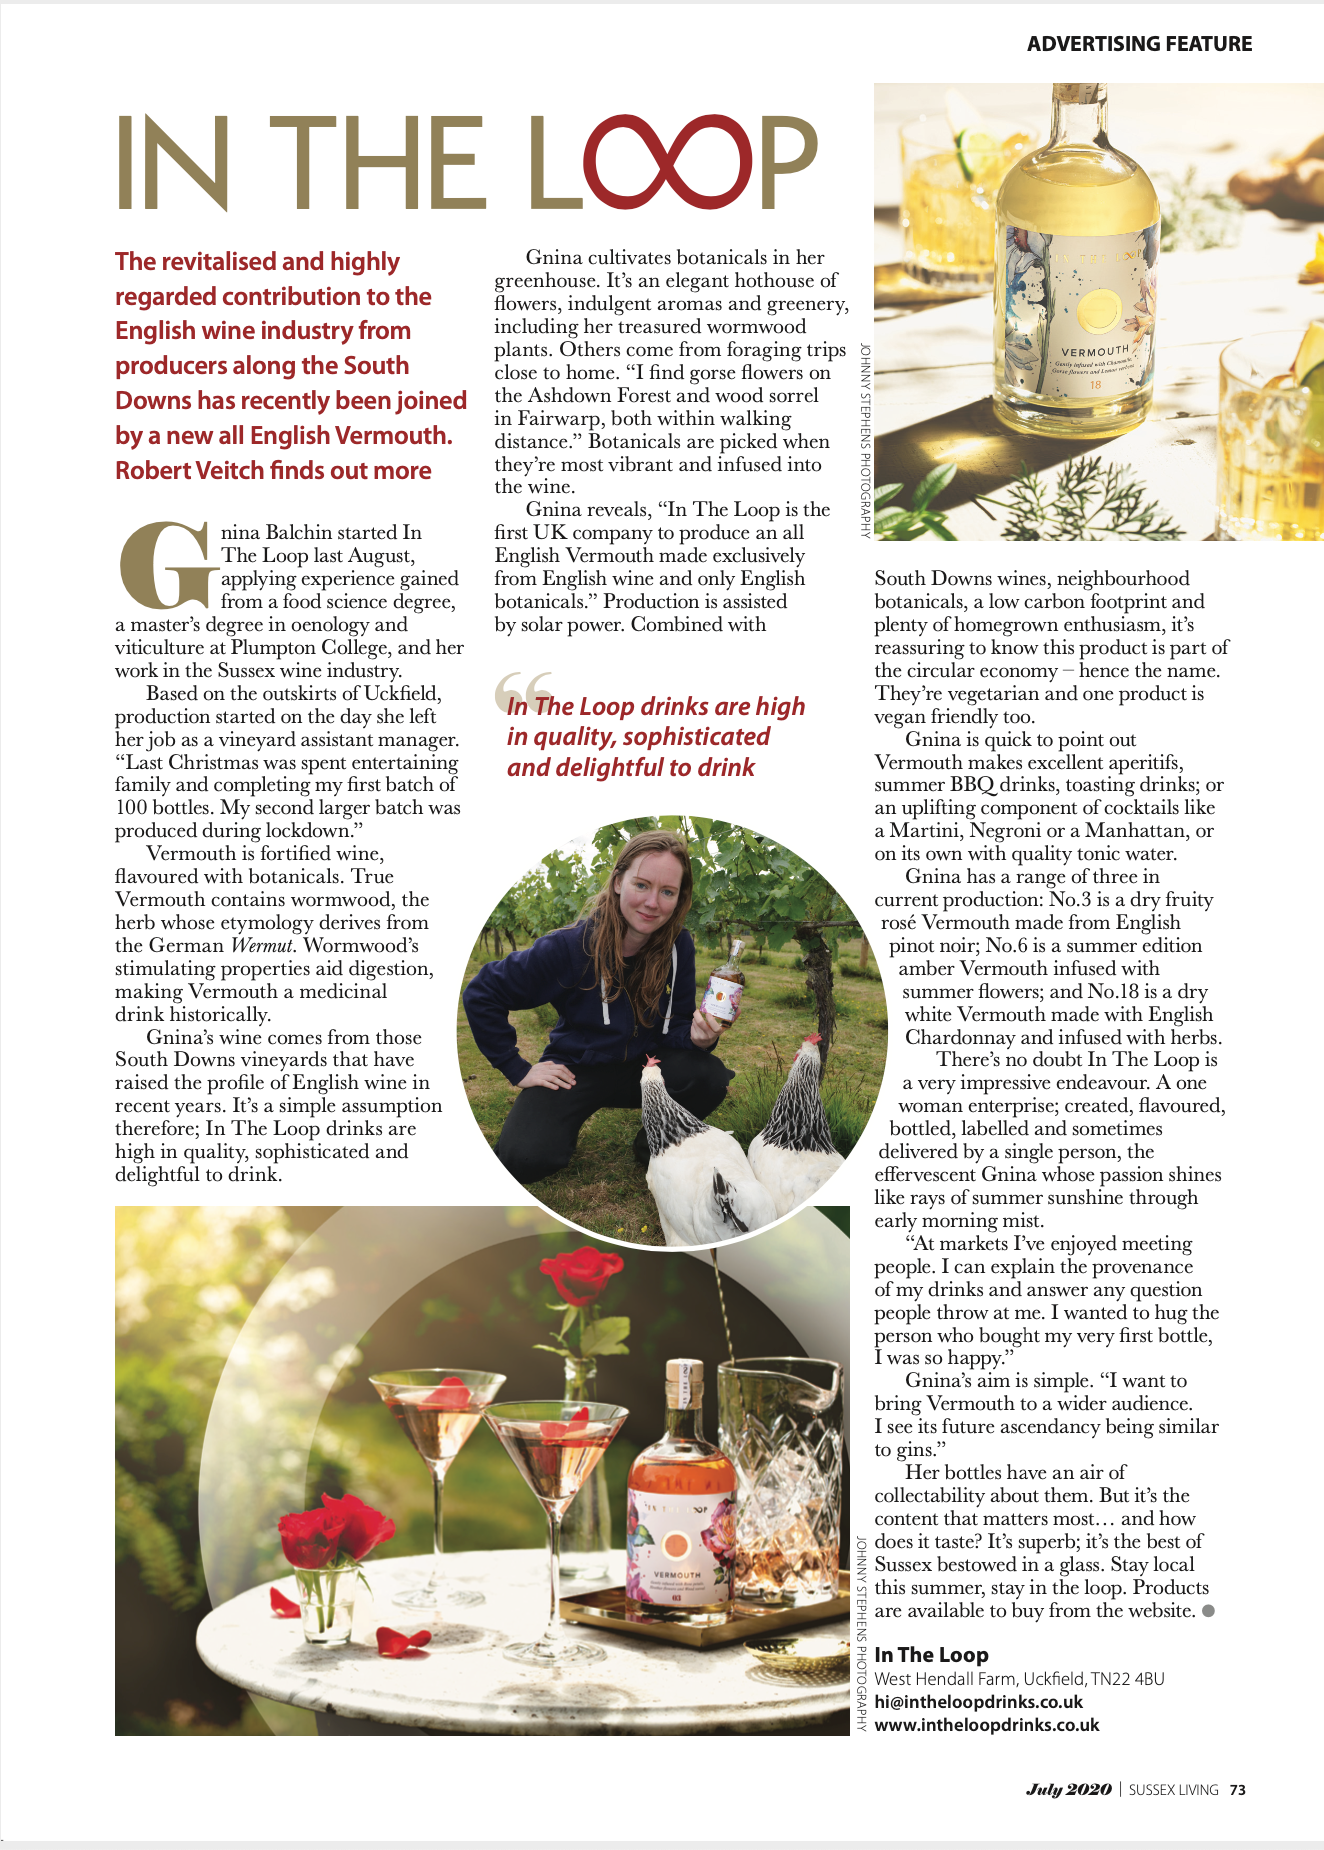 Sussex Living article